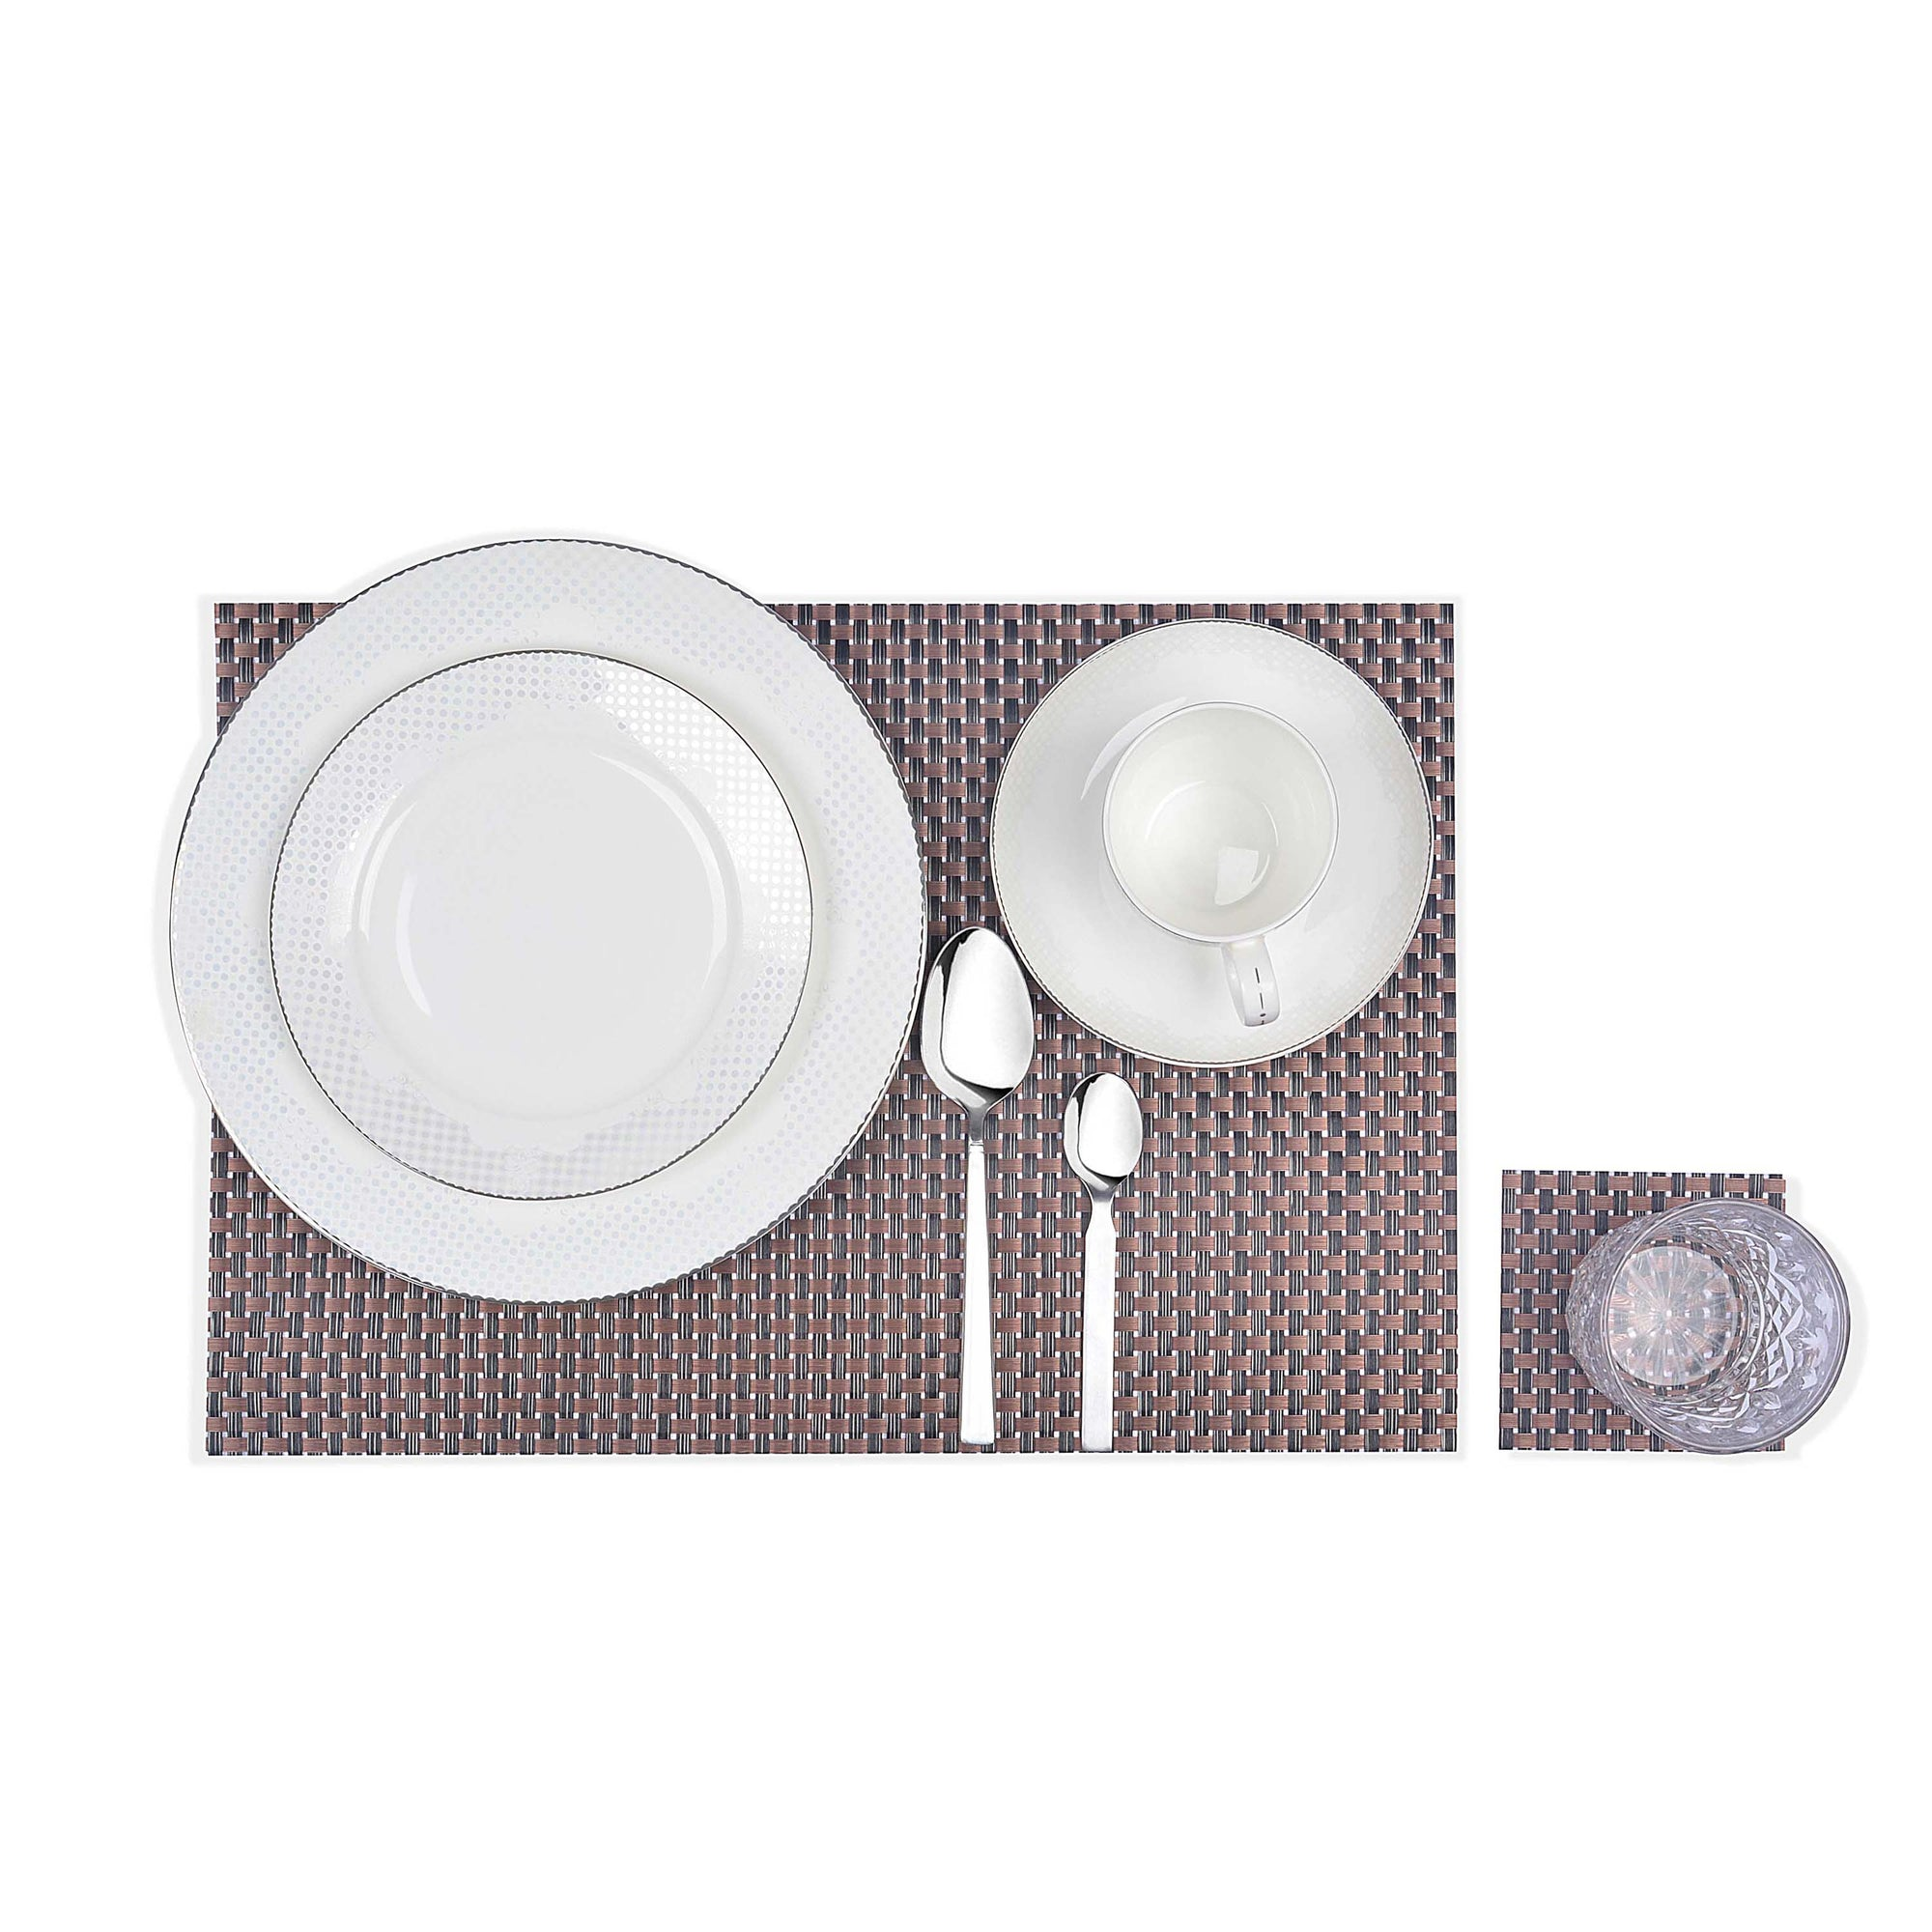 Braided Textured Plastic Place-mat (Set of 2)